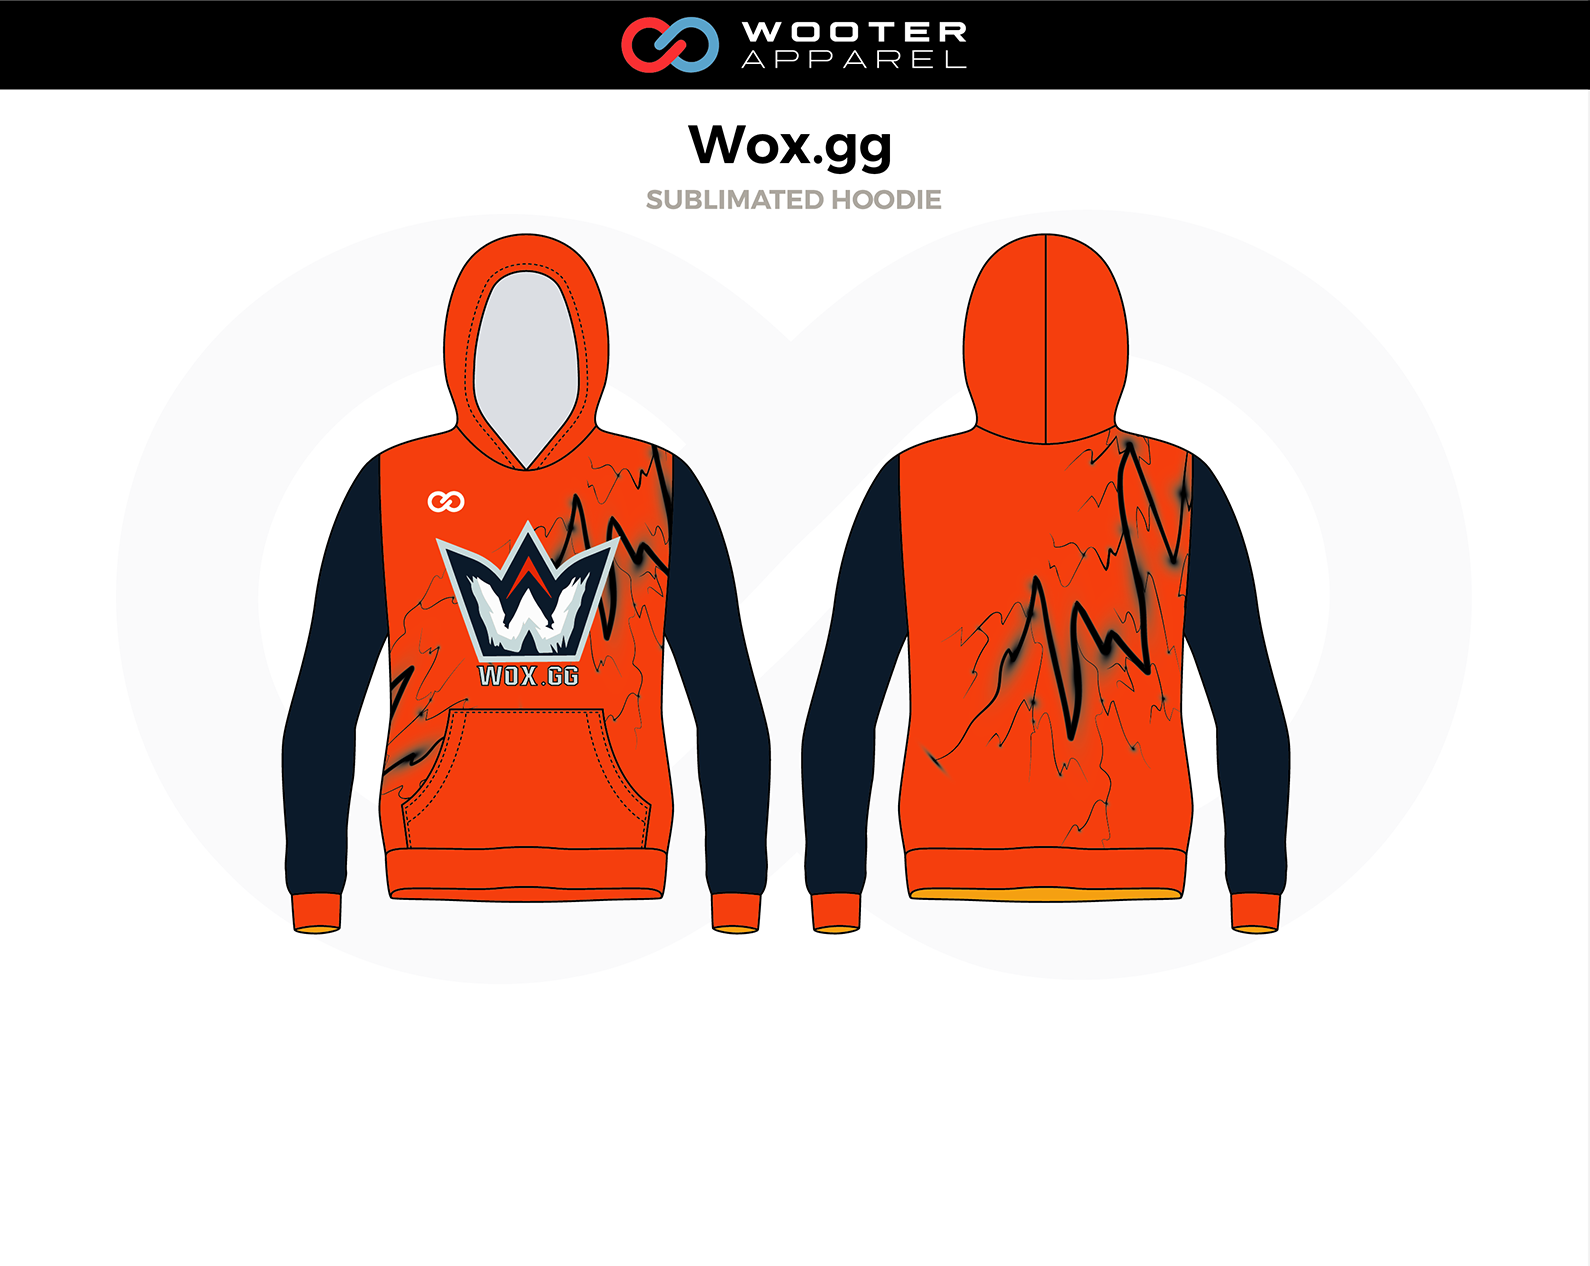 Wox gg ESports hoodie-01.png